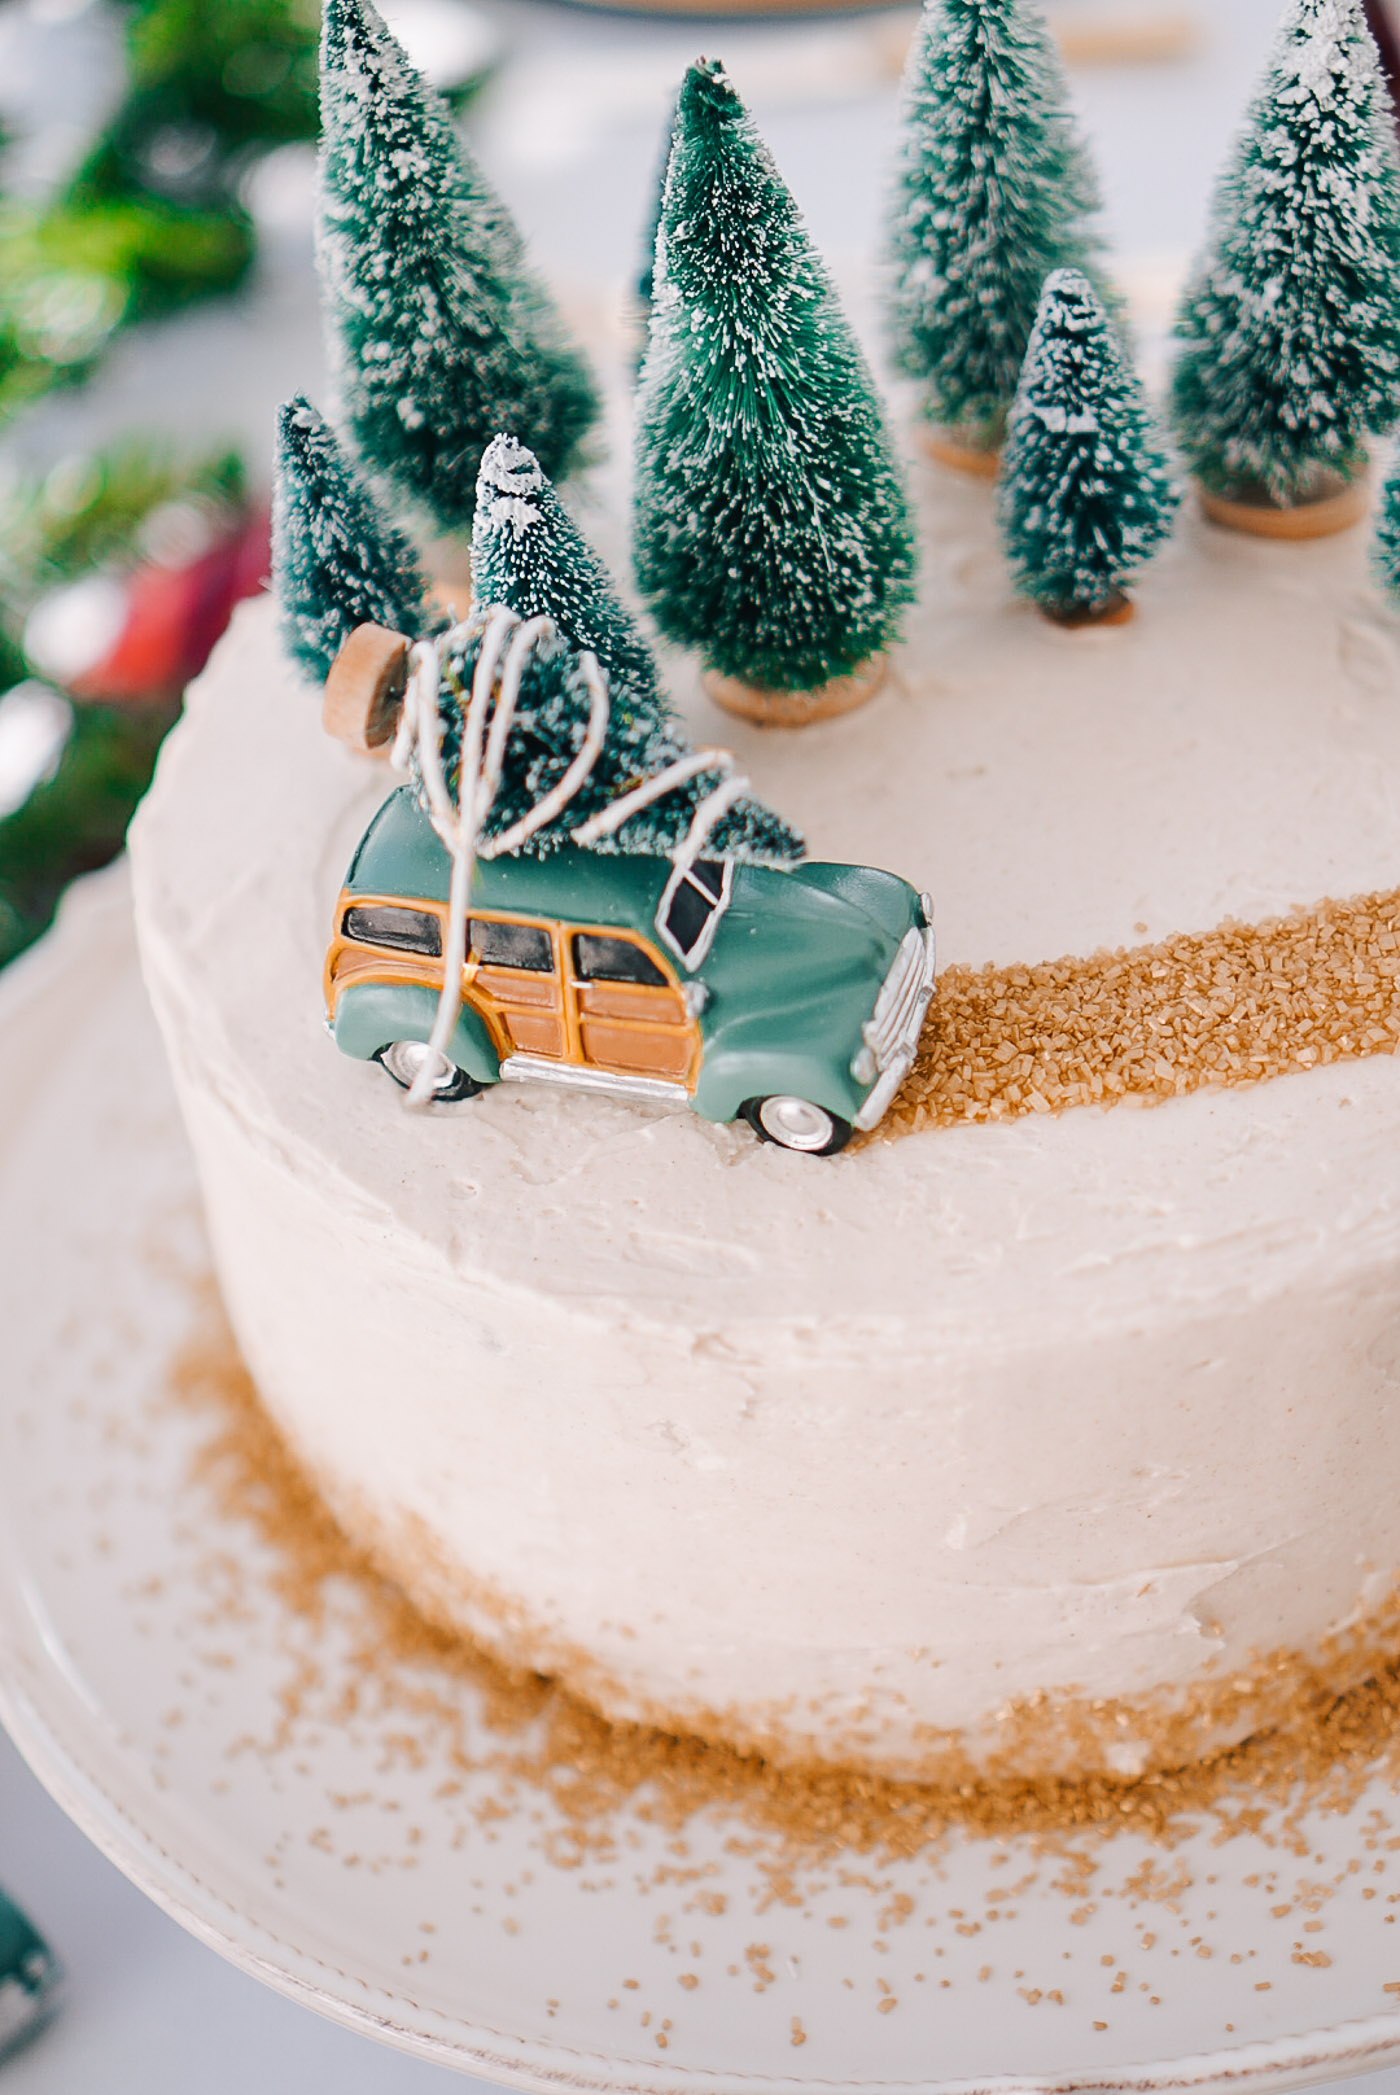 The perfect Christmas recipe for gingerbread layer cake by Lauren Cermak of the Southern lifestyle blog, Going For Grace.